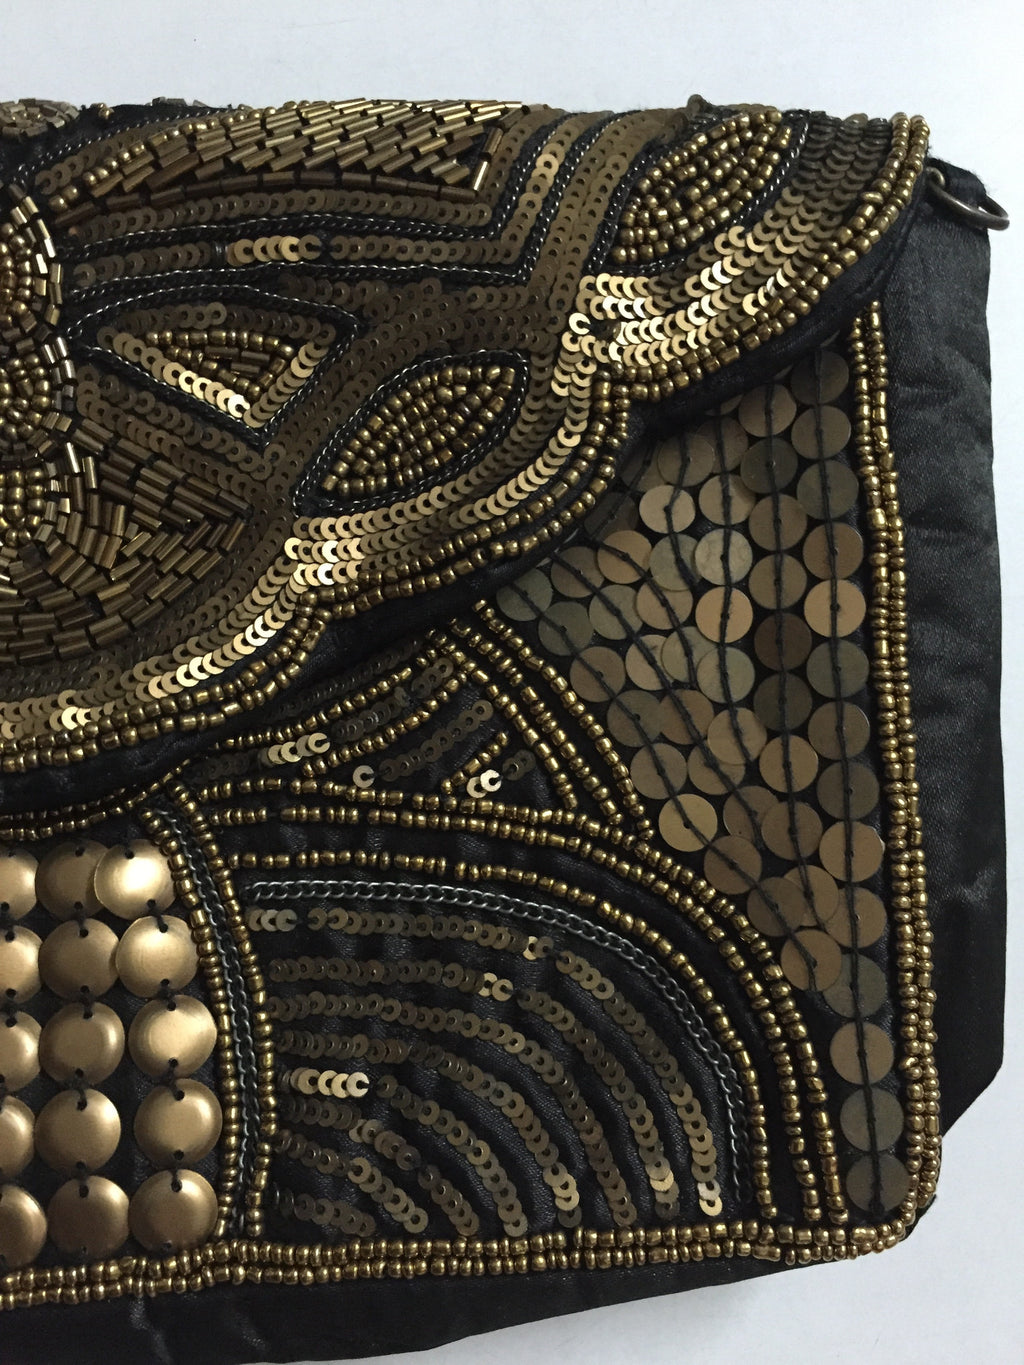 Beads & Sequins - Bronze Magic Clutch - #FTFY - For The Fun Years